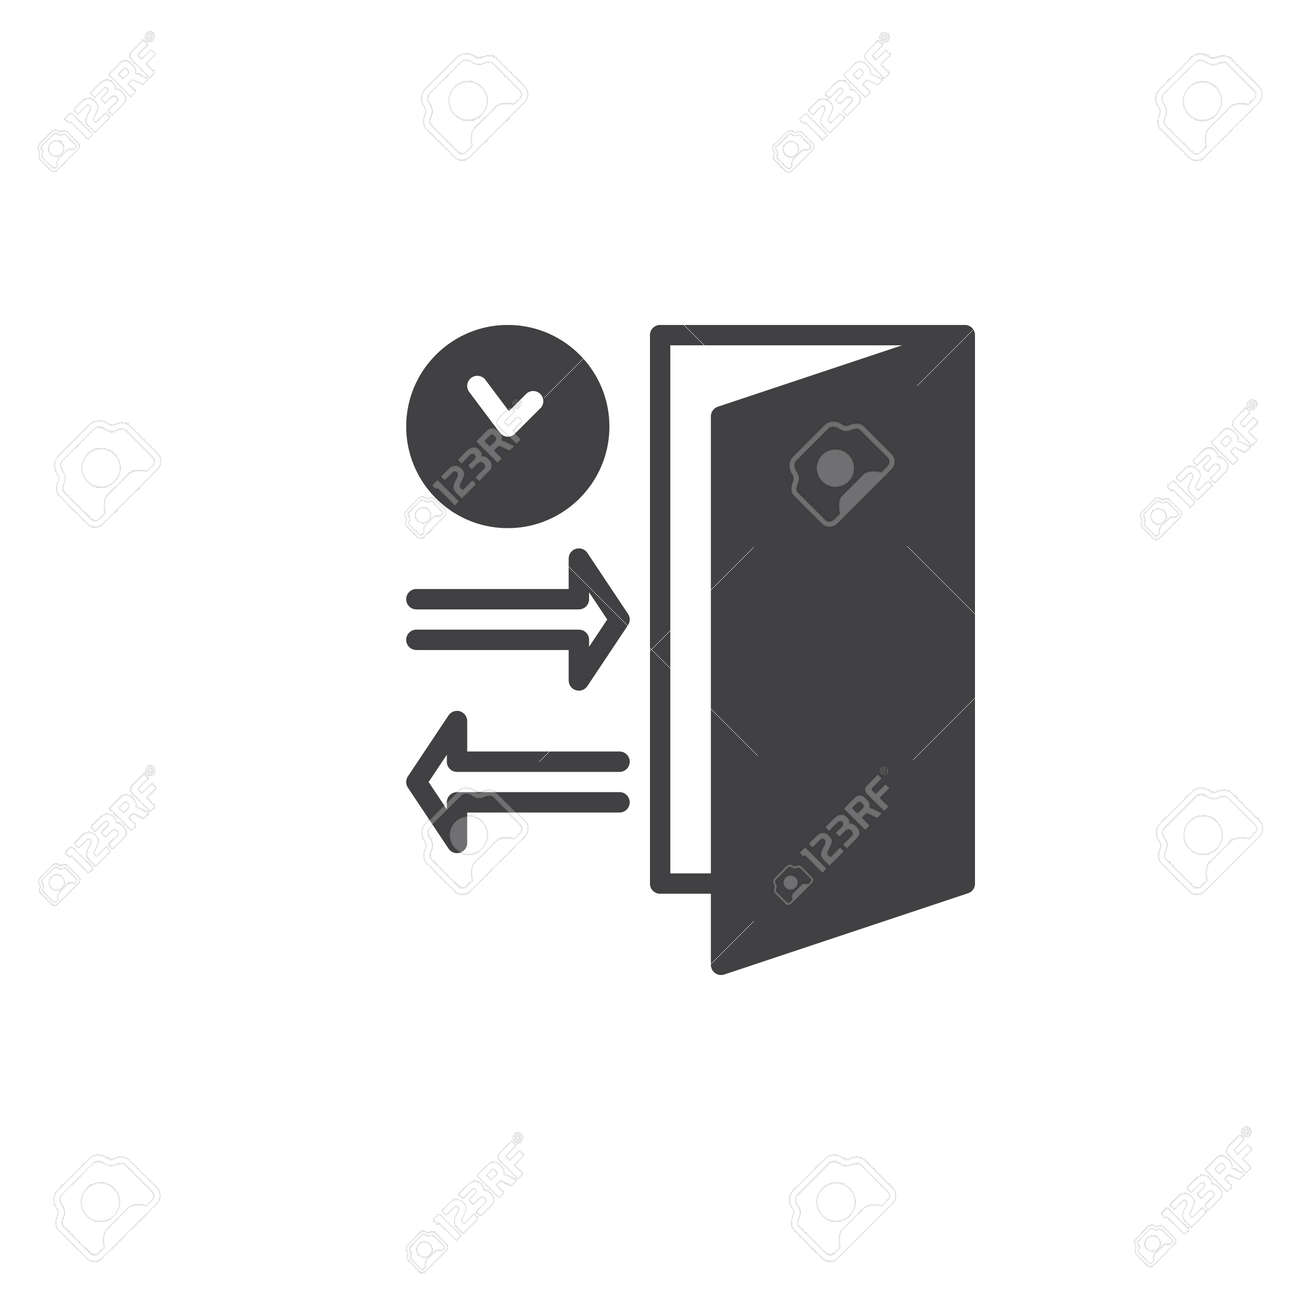 Check In Check Out Icon Vector Filled Flat Sign Solid Pictogram